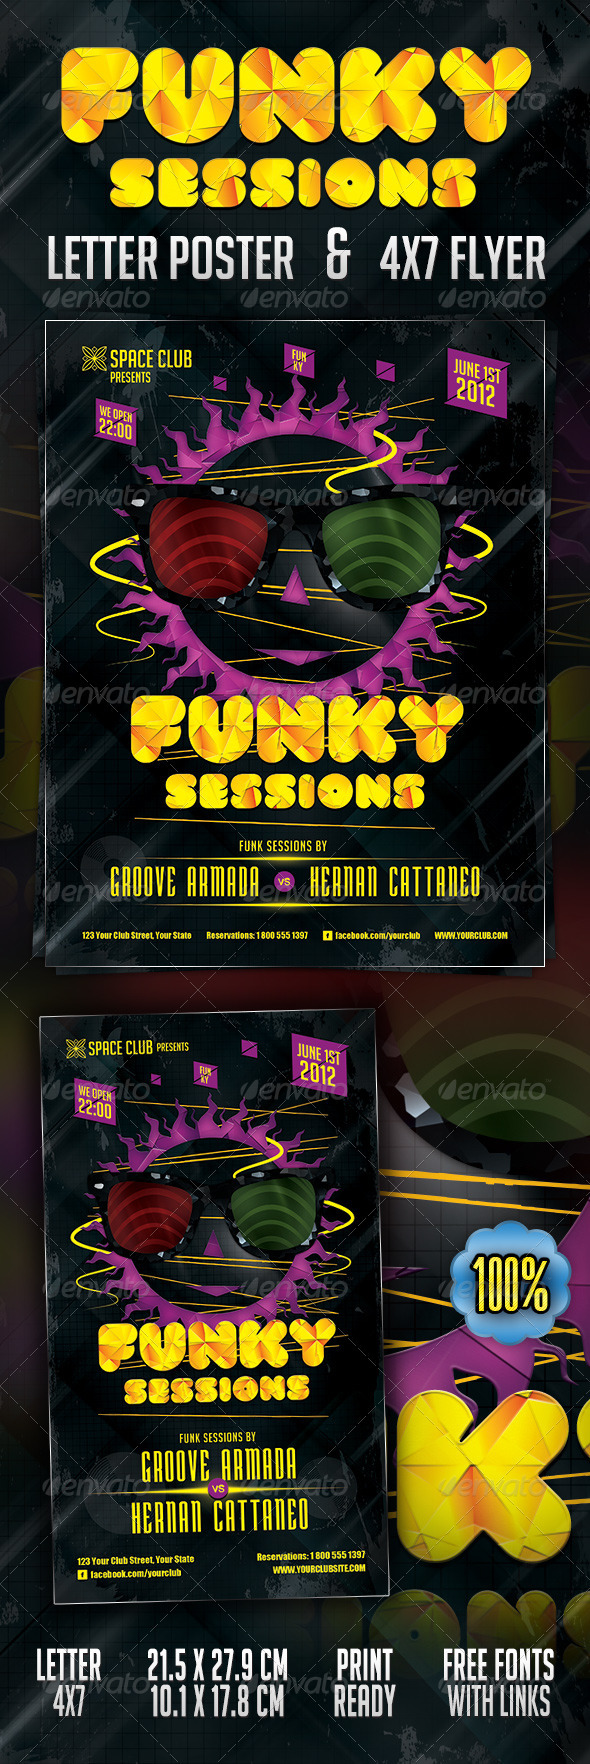 funky sessions poster flyer